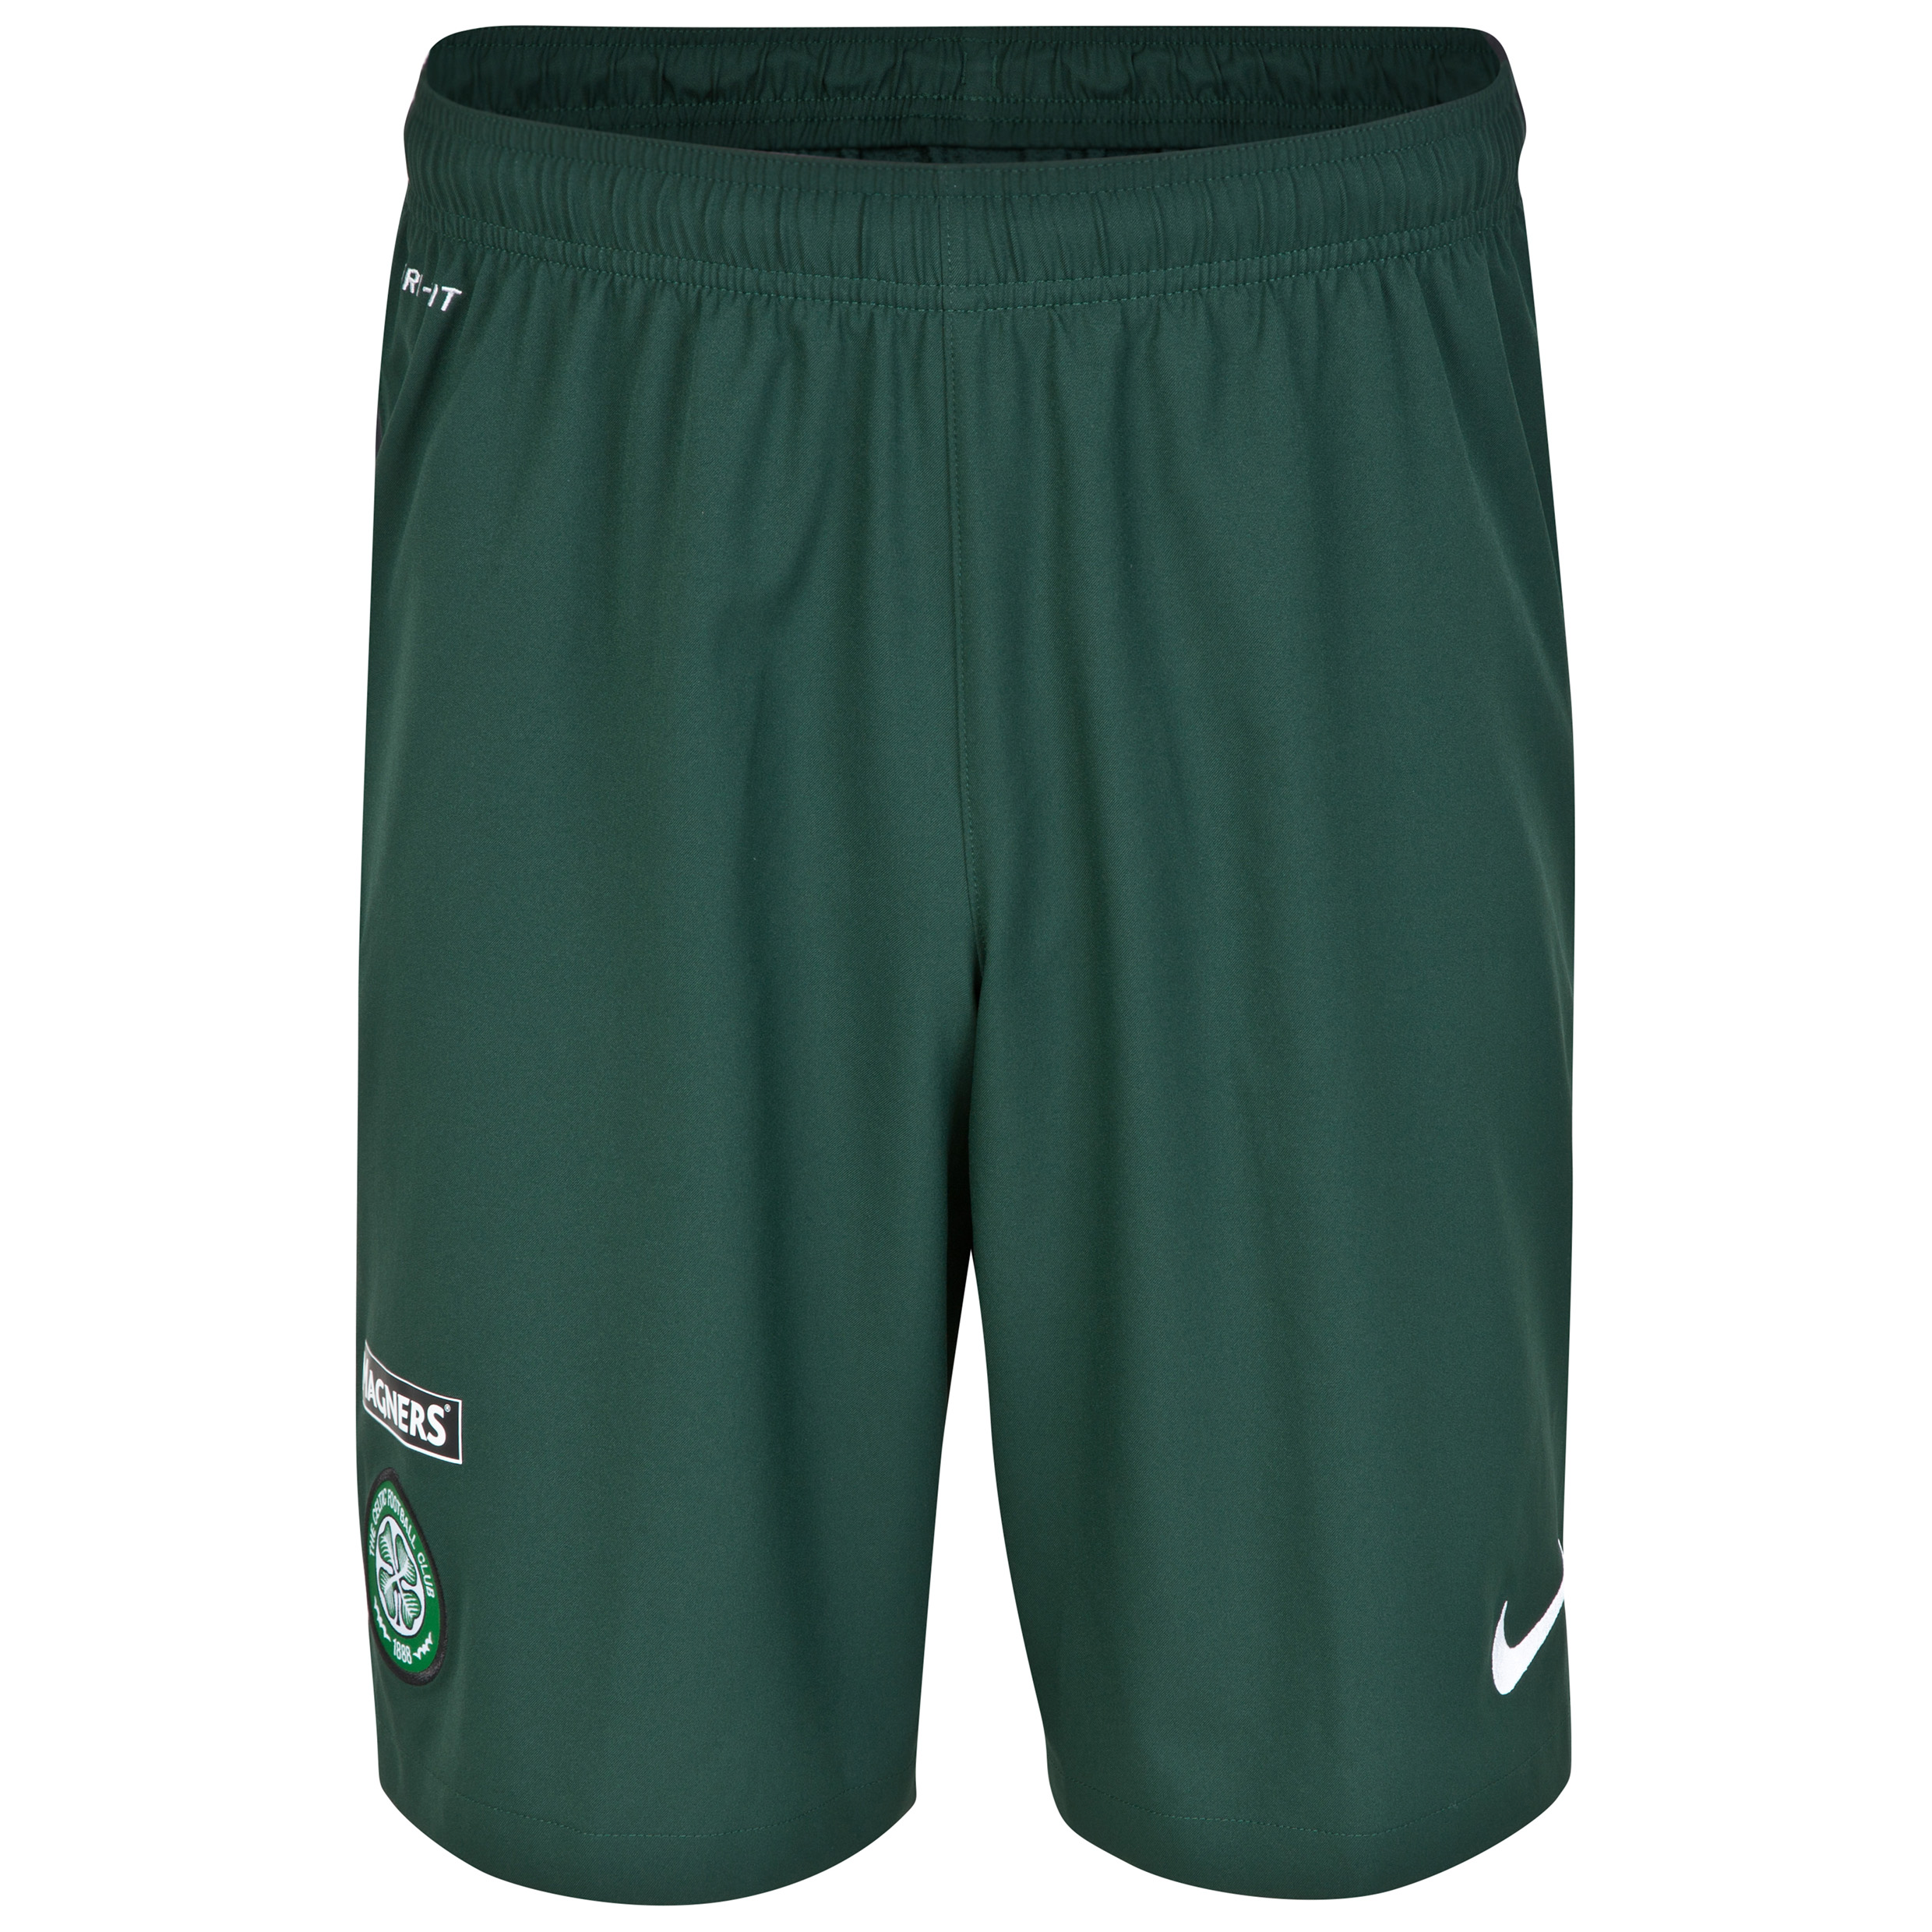 Celtic Away Short 2014/15 Green